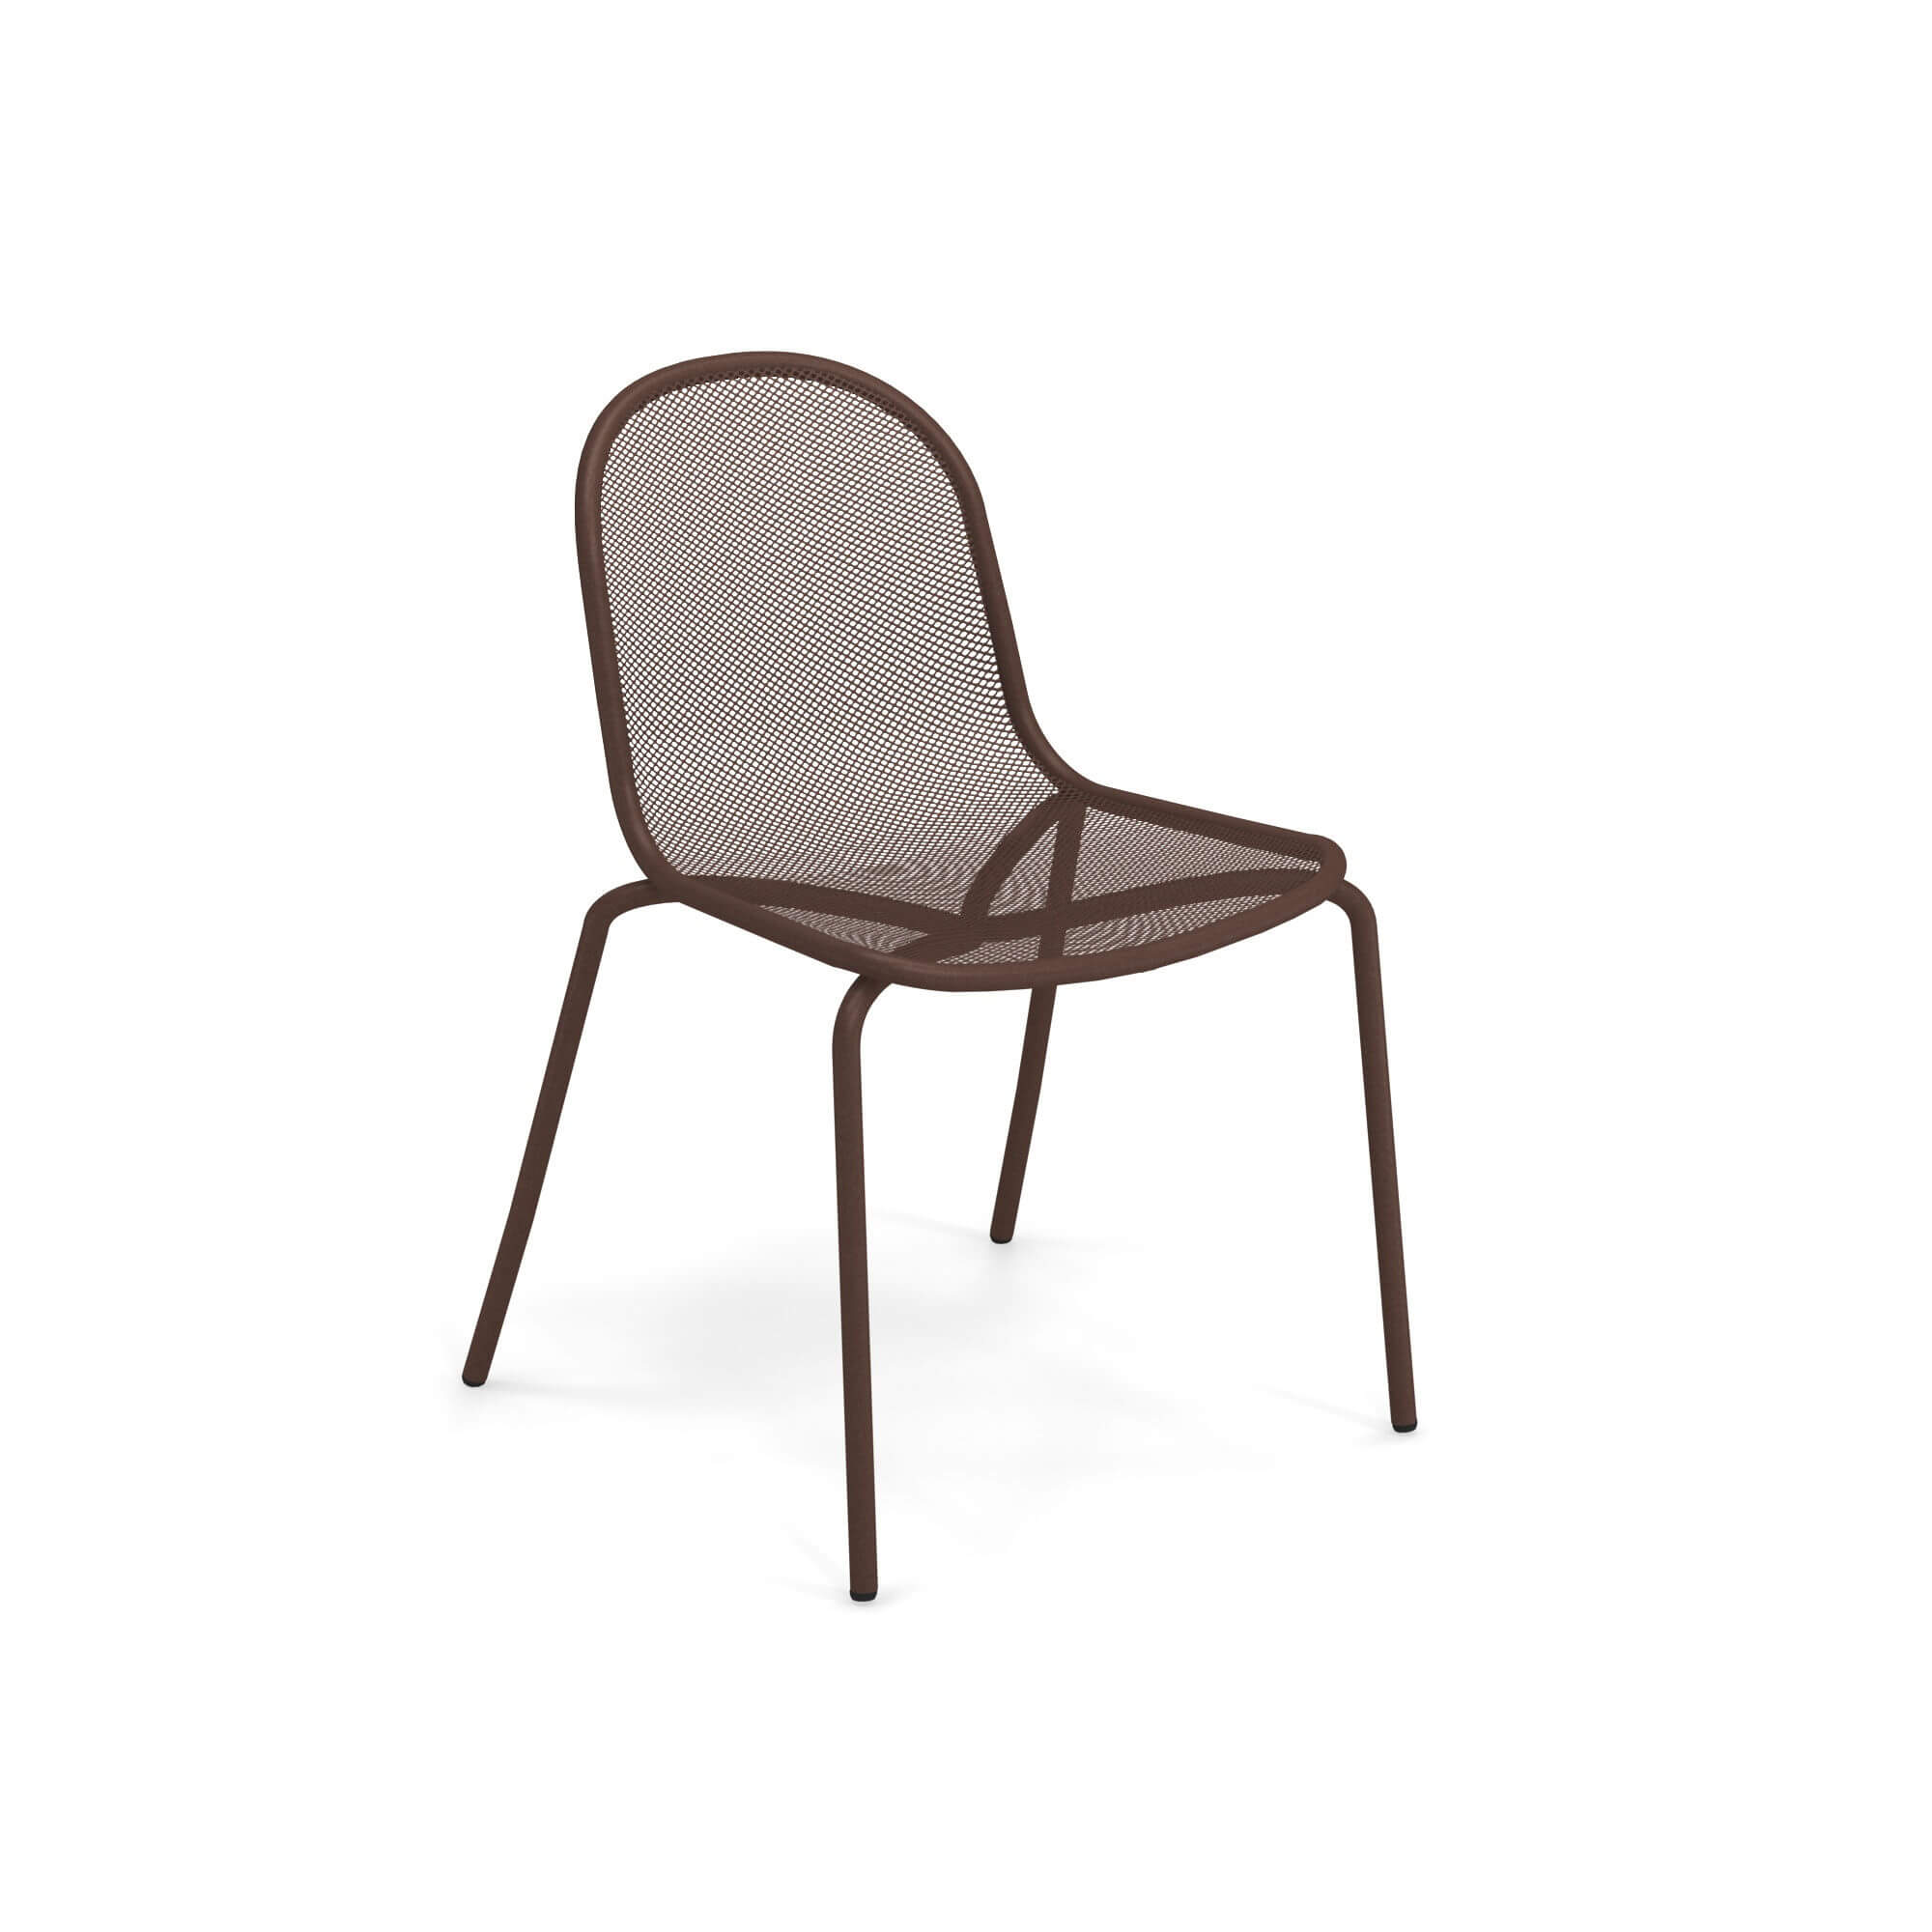 Garden chair / outside in Steel - Collection Nova